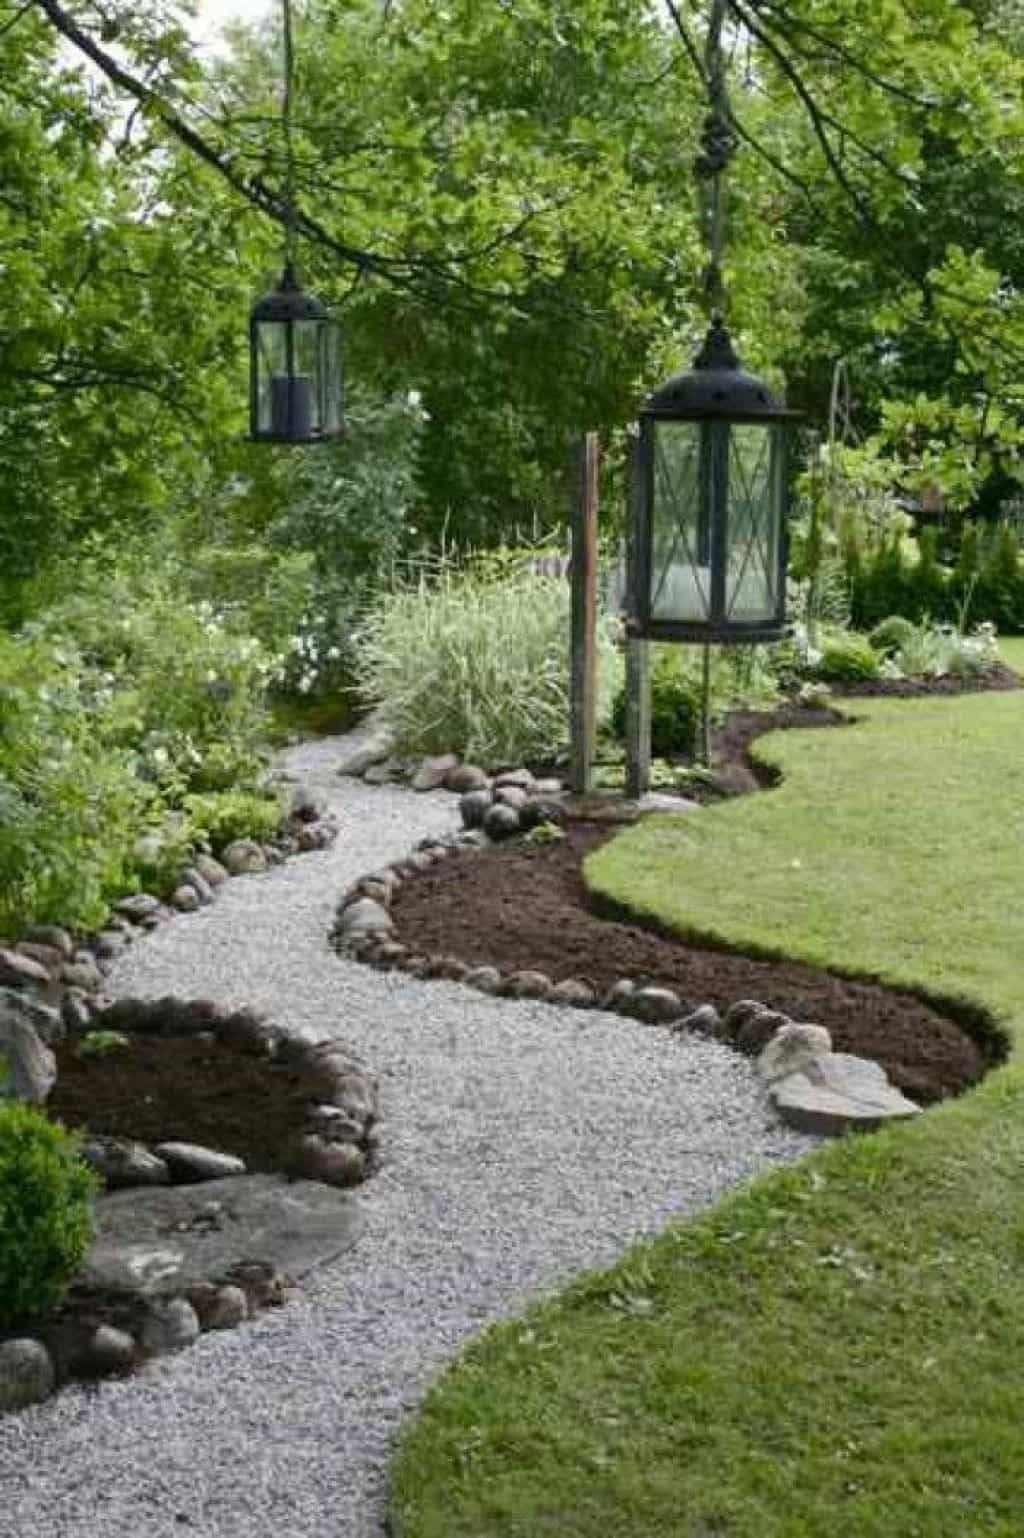 Garden With Lanterns And Gravel Walkway is part of Modern garden Walkway - Garden walkways are made of several different materials, including natural stone, brick, glass or gravel